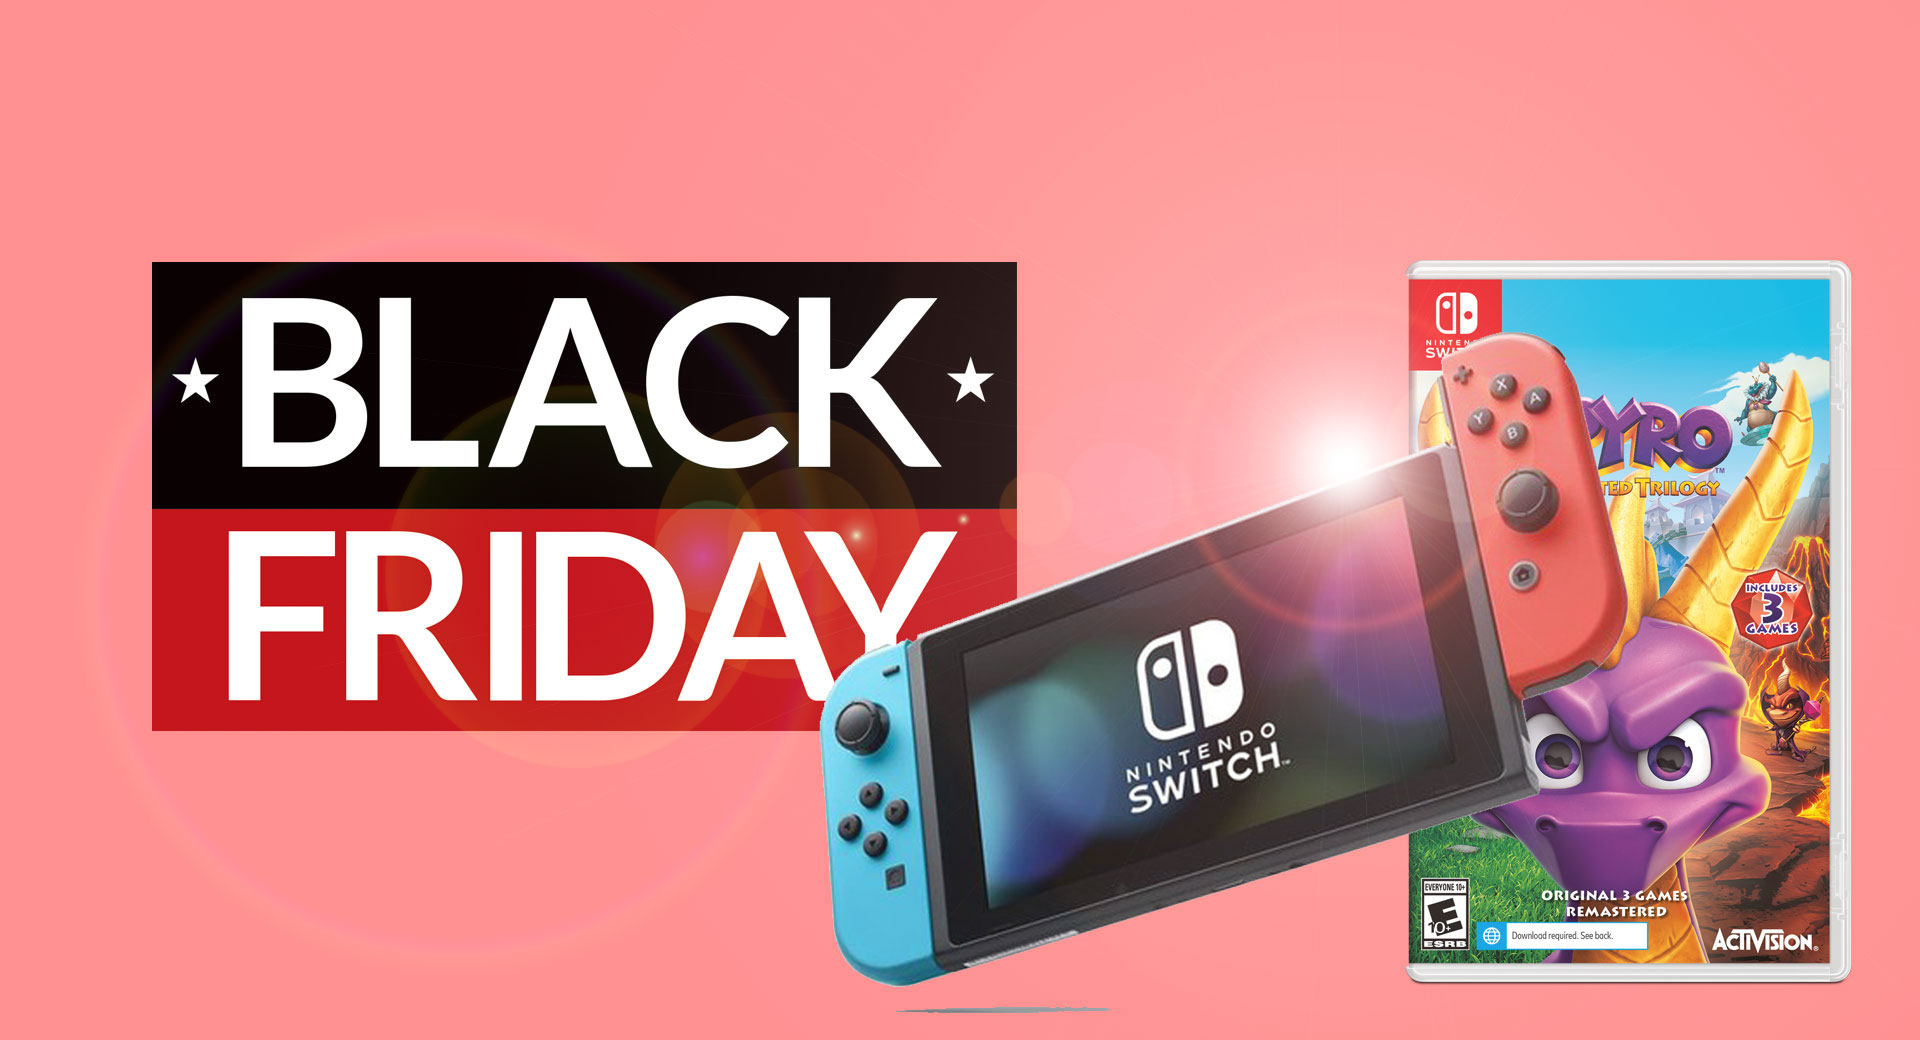 Red Hot Nintendo Switch Black Friday Deal From Walmart Gives